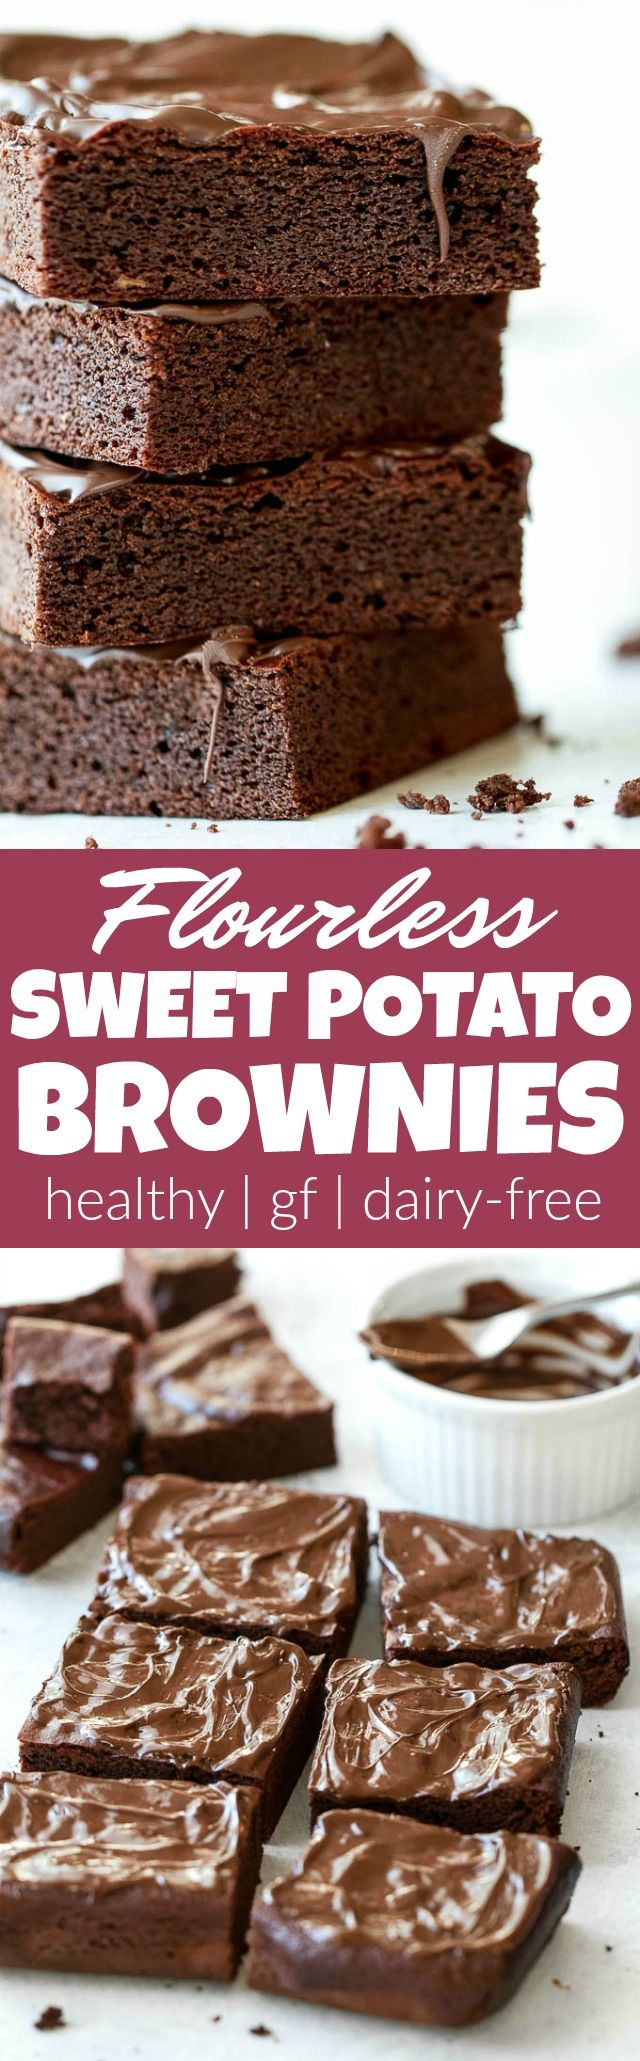 Flourless Sweet Potato Brownies made in the blender with only 7 ingredients! They're grain-free, oil-free, dairy-free, and refined-sugar-free, so they make a deliciously healthy gluten-free treat for when those chocolate cravings hit | runningwithspoons.com